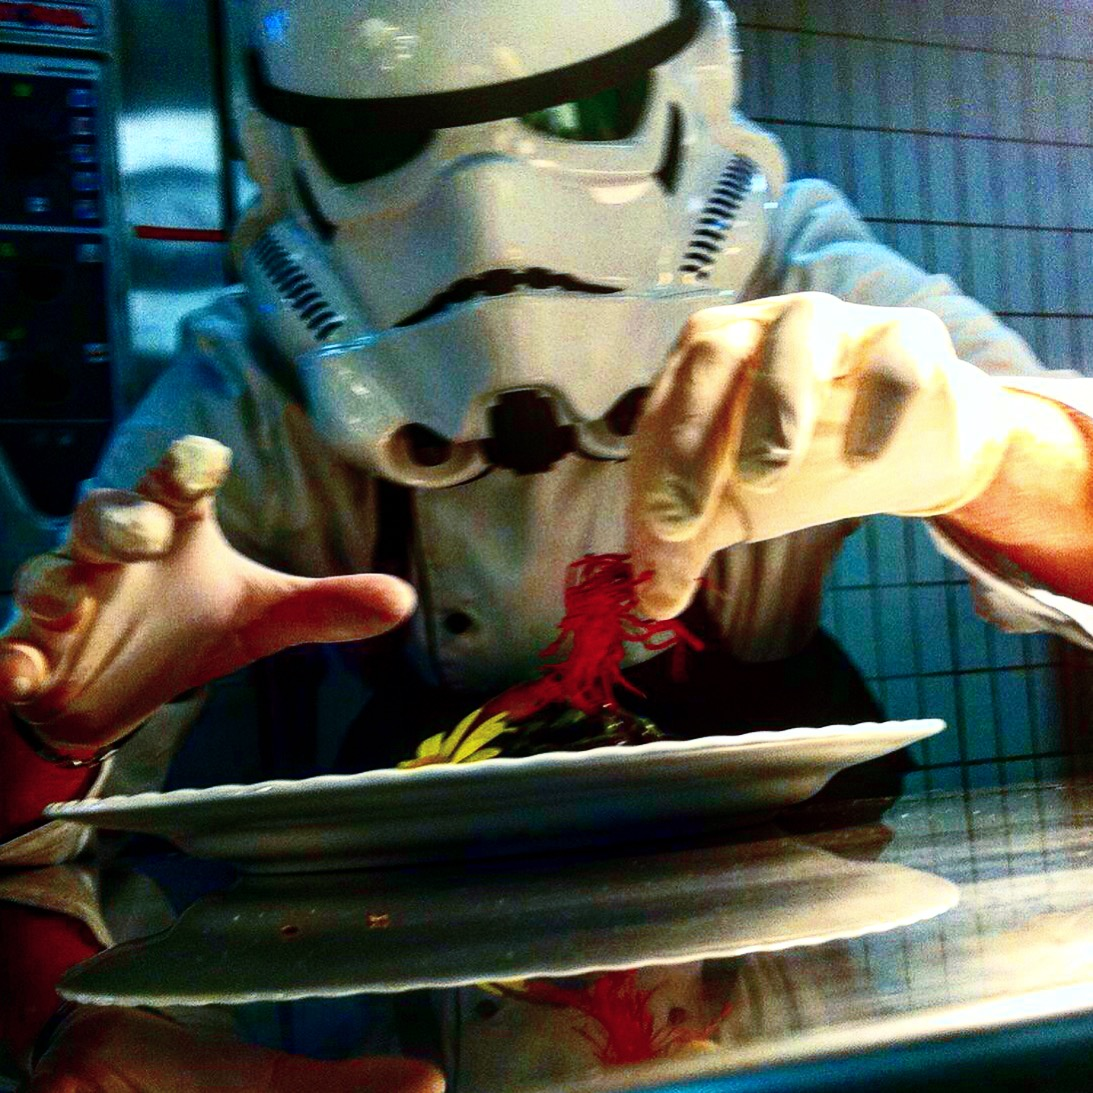 Stormtrooper chef, Stefan Winheim, chef de cuisine, Hotel an der Therme Bad Orb